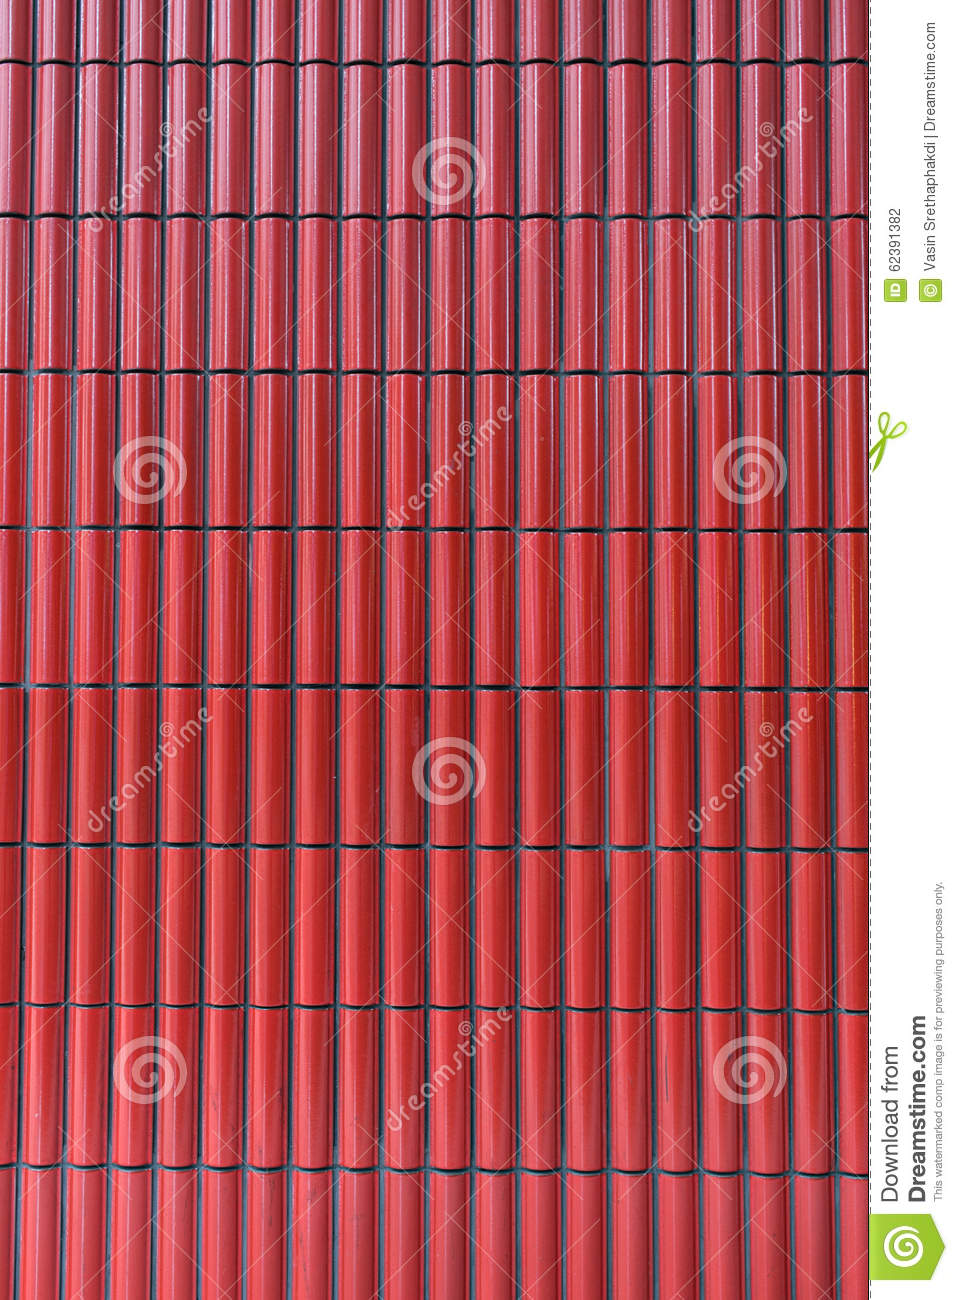 Red ceramic tiles stock photo image of wallpaper floor 62391382 red ceramic tiles dailygadgetfo Choice Image